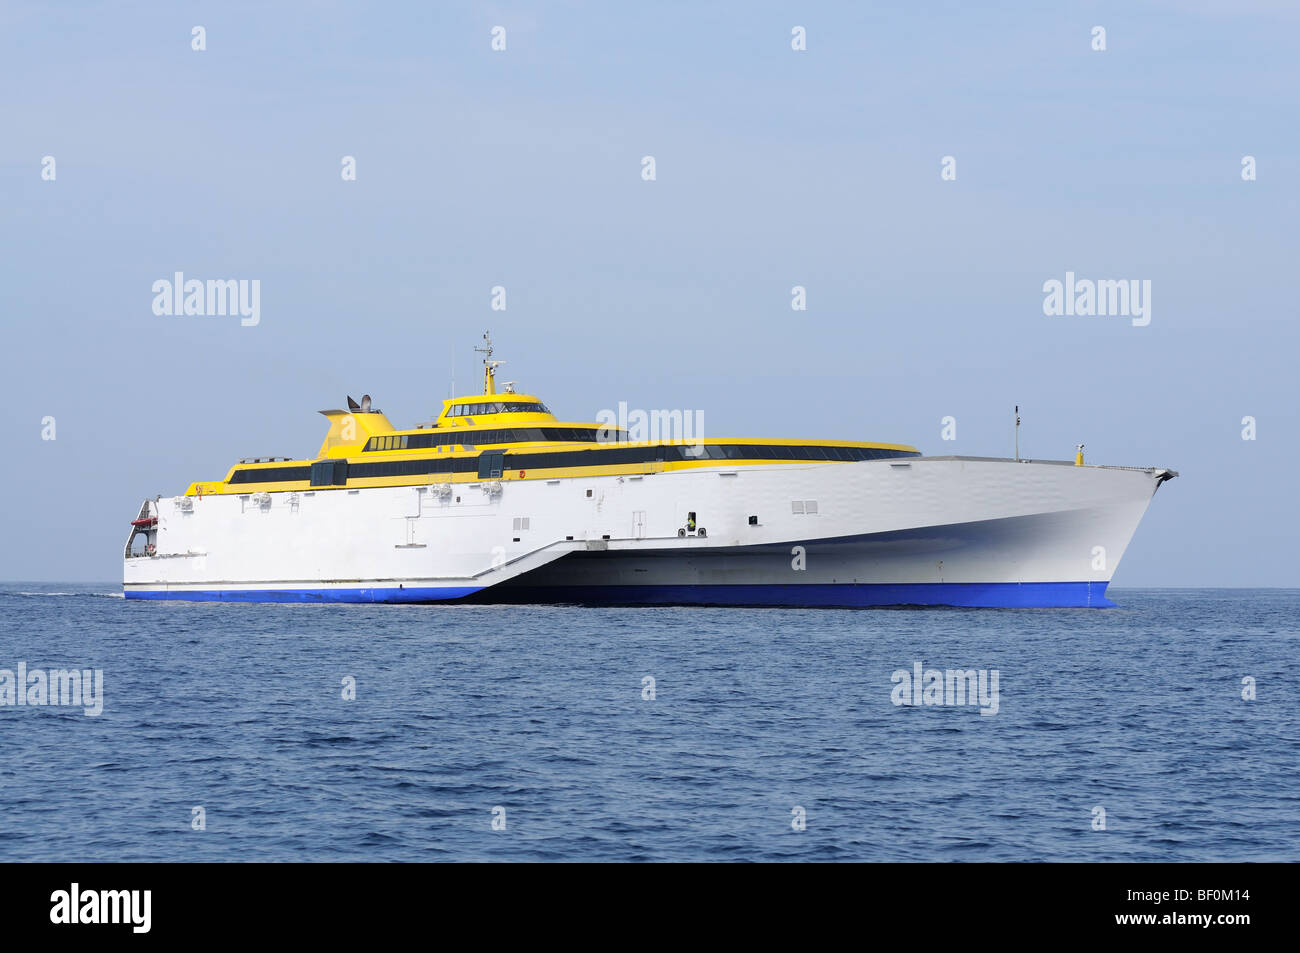 Modern high speed ferry boat - Stock Image